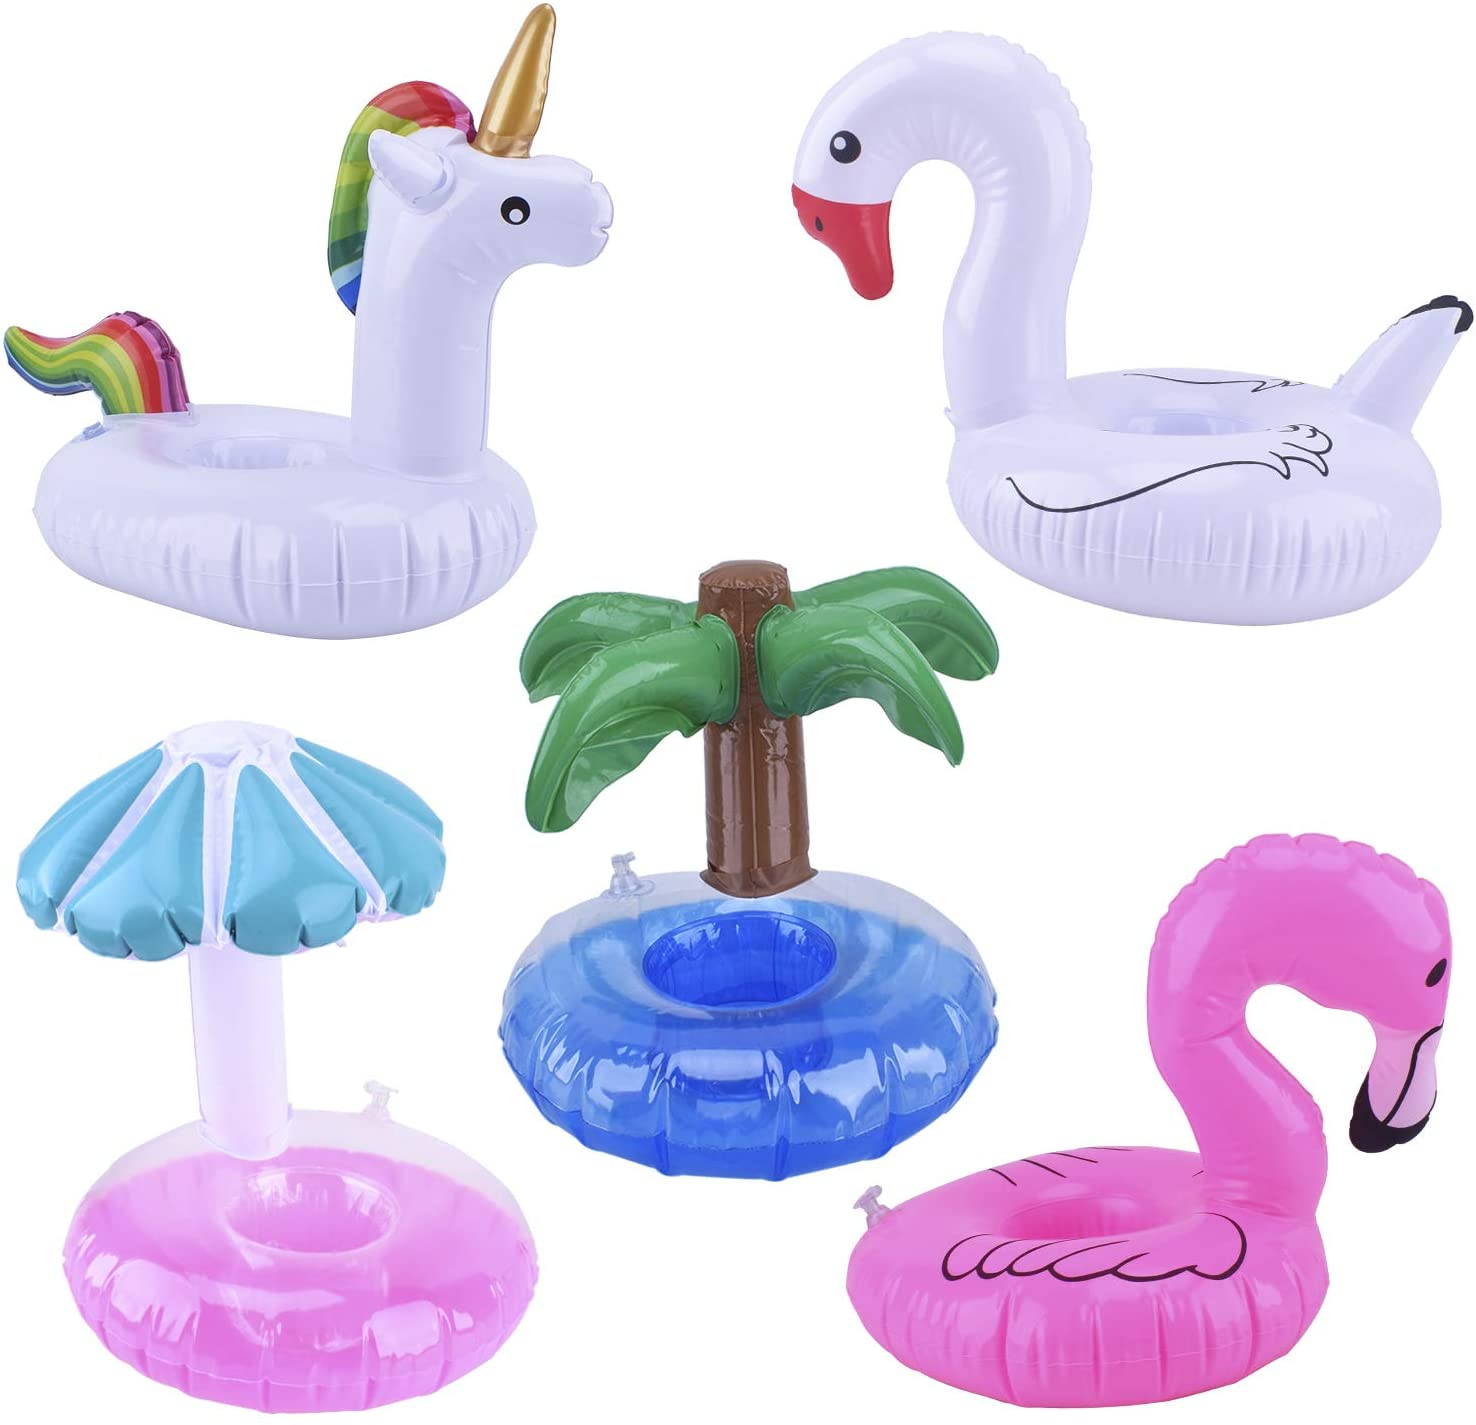 Blovec 5 Pack Inflatable Drink Holders Inflatable Cup Coasters Drink Floats Swimming Drink Holder Unicorn Flamingo Palm Tree Mushroom Swan for Pool Party (Colorful)